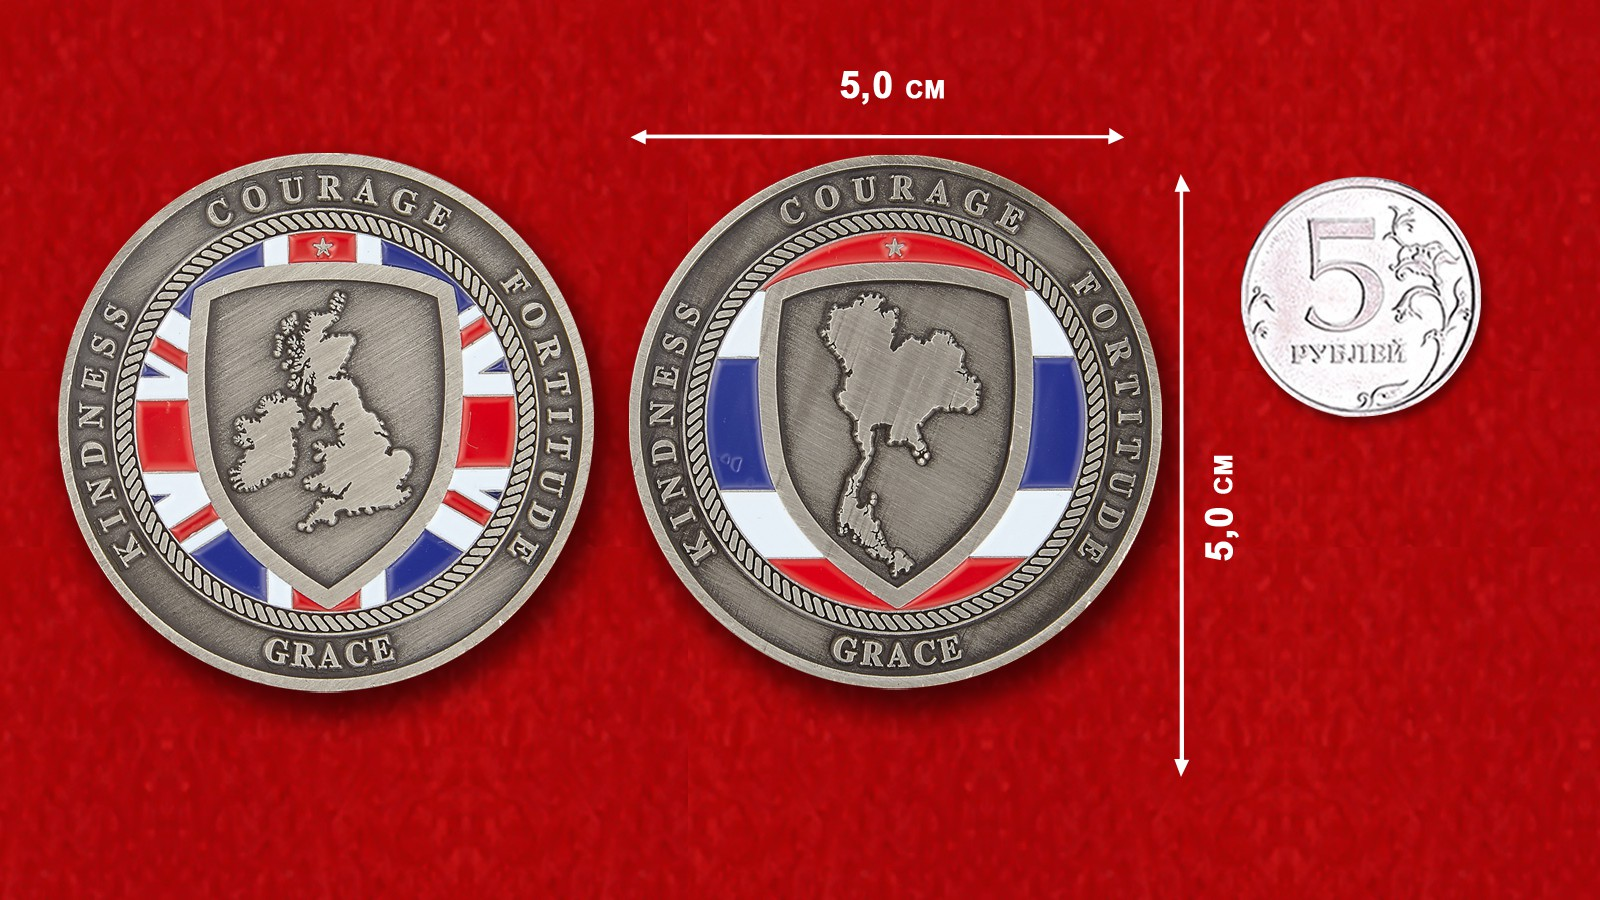 The Thailand Branch of The Royal British Legion Challenge Coin